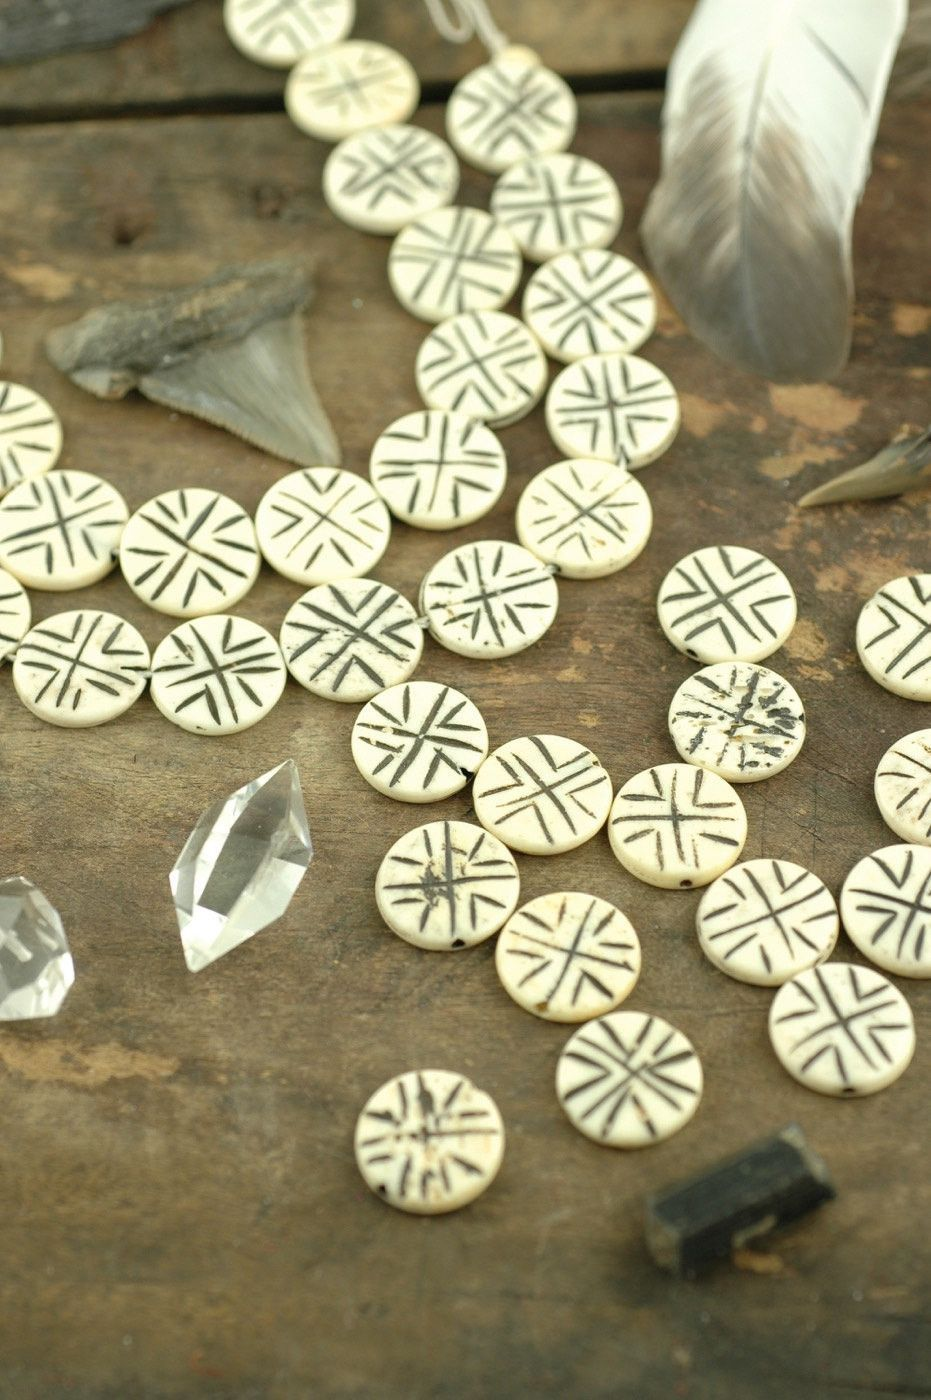 White Discs Hand Carved Coin Bone Beads 3x16mm 14 Beads Natural Indian Cow Bone Craft Jewelry Making Supply Bohemian Boho Crafts Cow Bones Bone Crafts